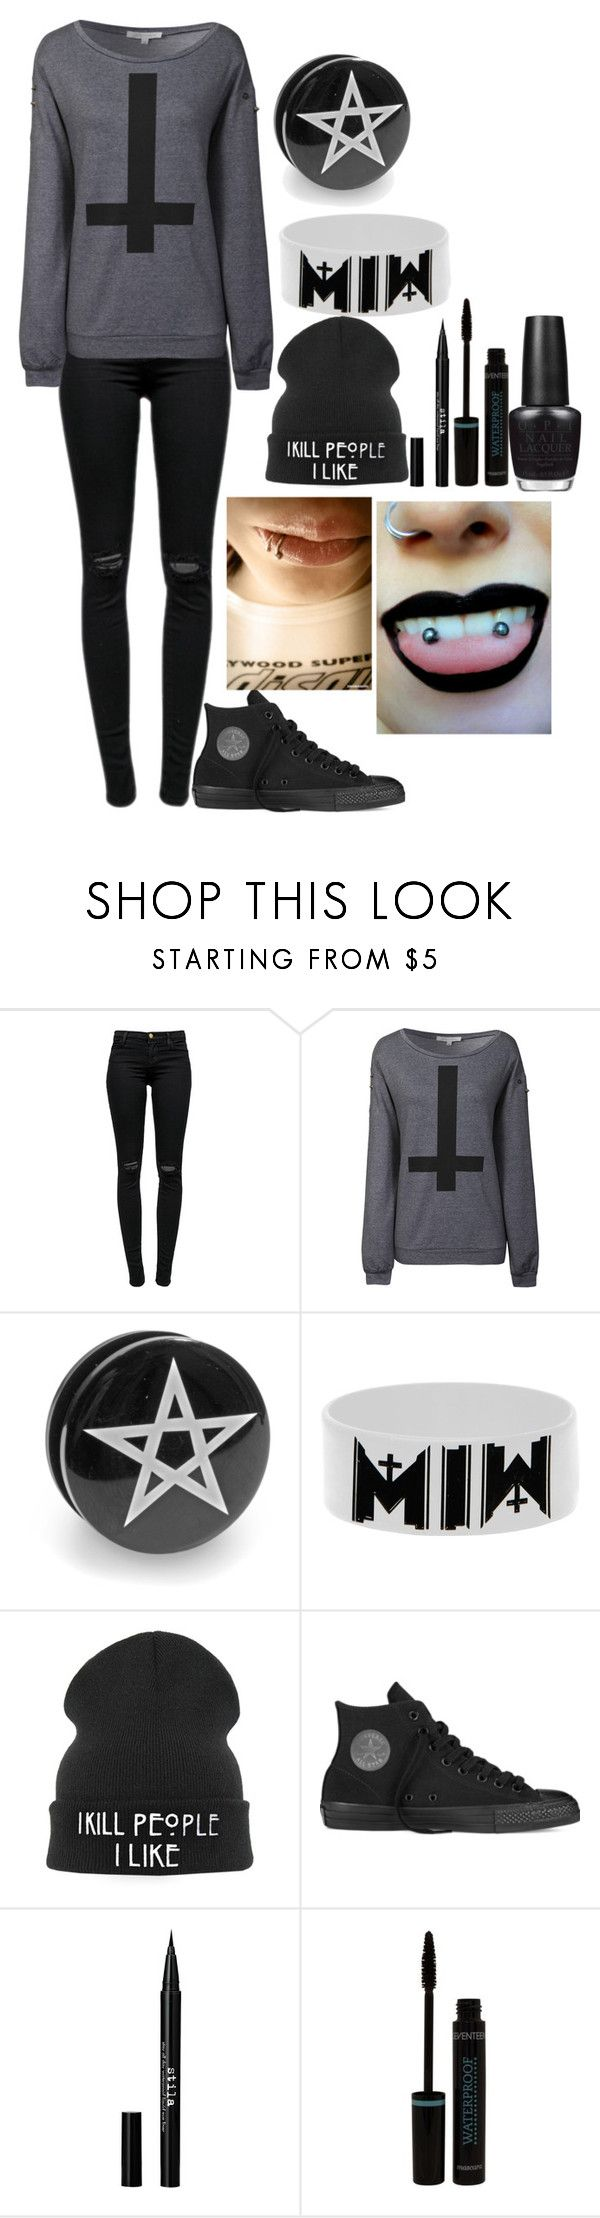 """School Stereotypes --Emo"" by thatemo ❤ liked on Polyvore featuring J Brand, Glamorous, Converse, Stila, OPI, black, converse, emo, piercings and schoolstereotypes"